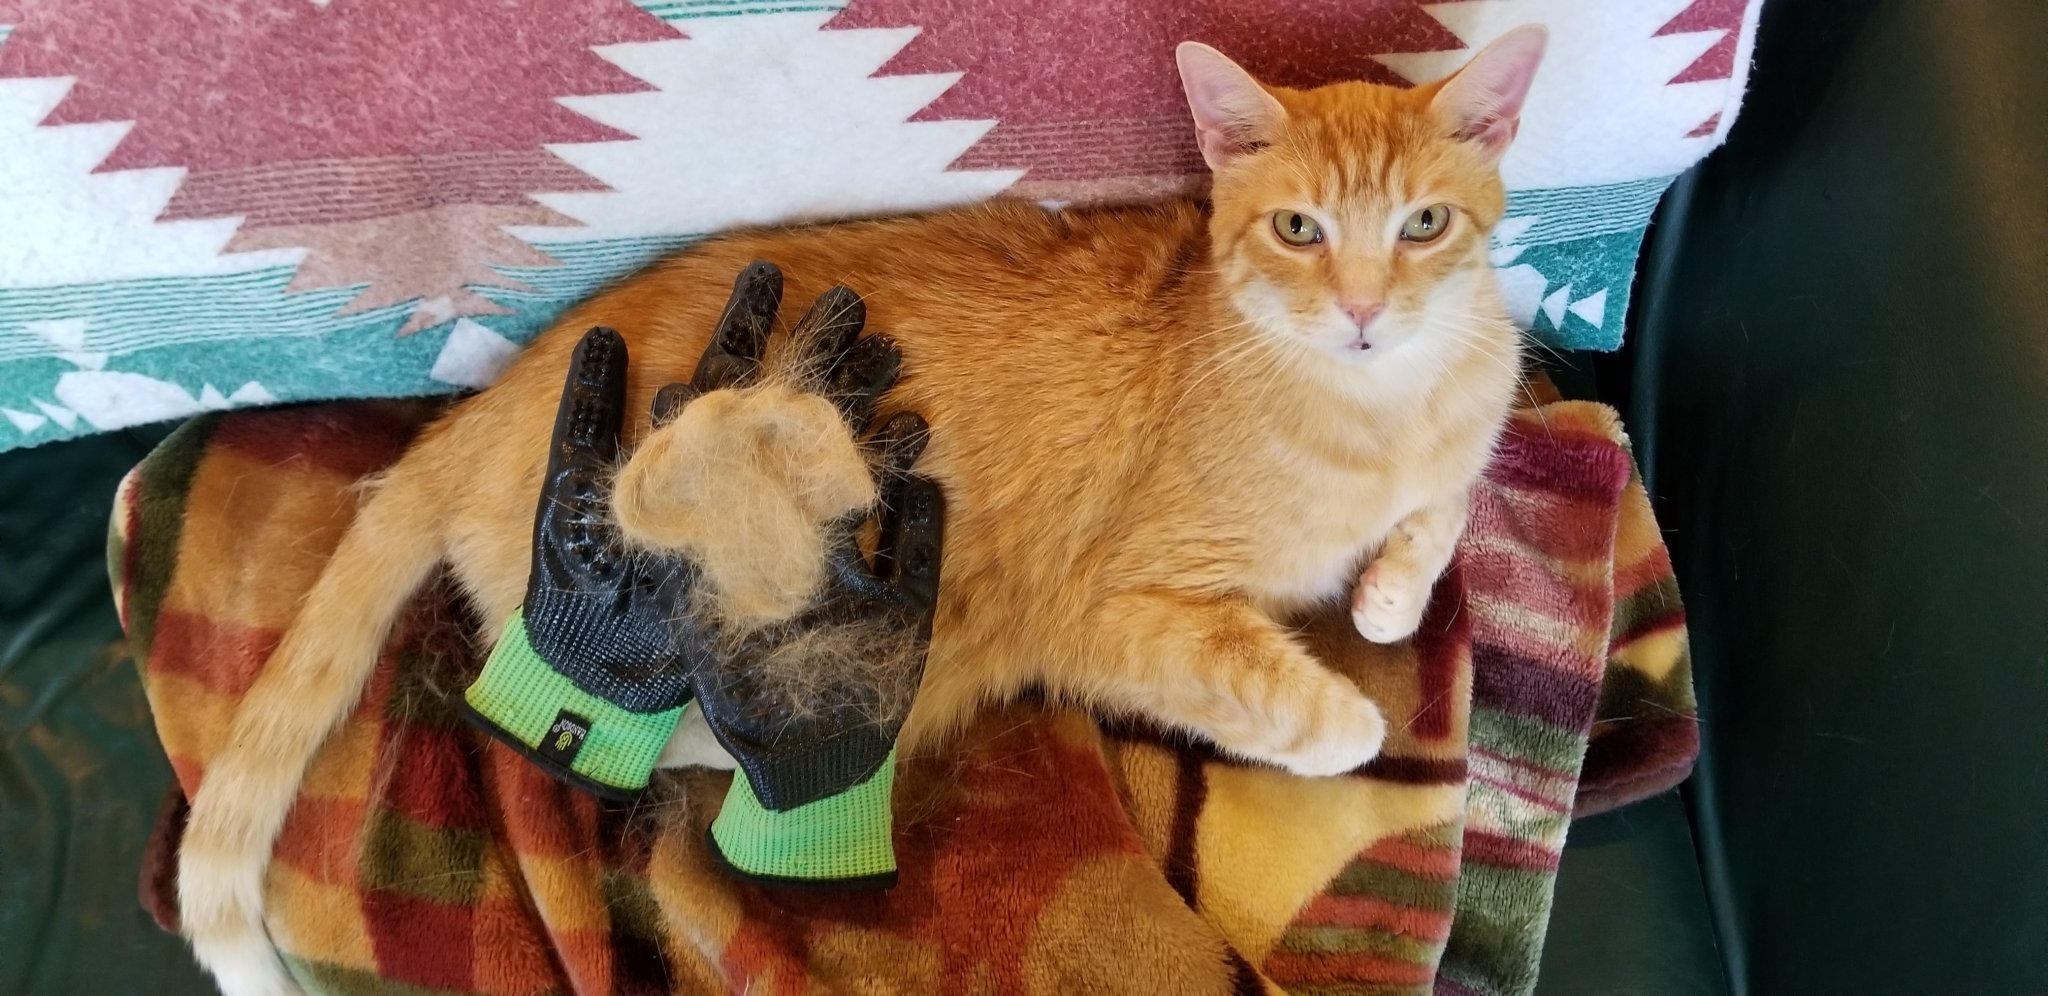 wessie after using the hands on grooming glove - plenty of fur has been removed